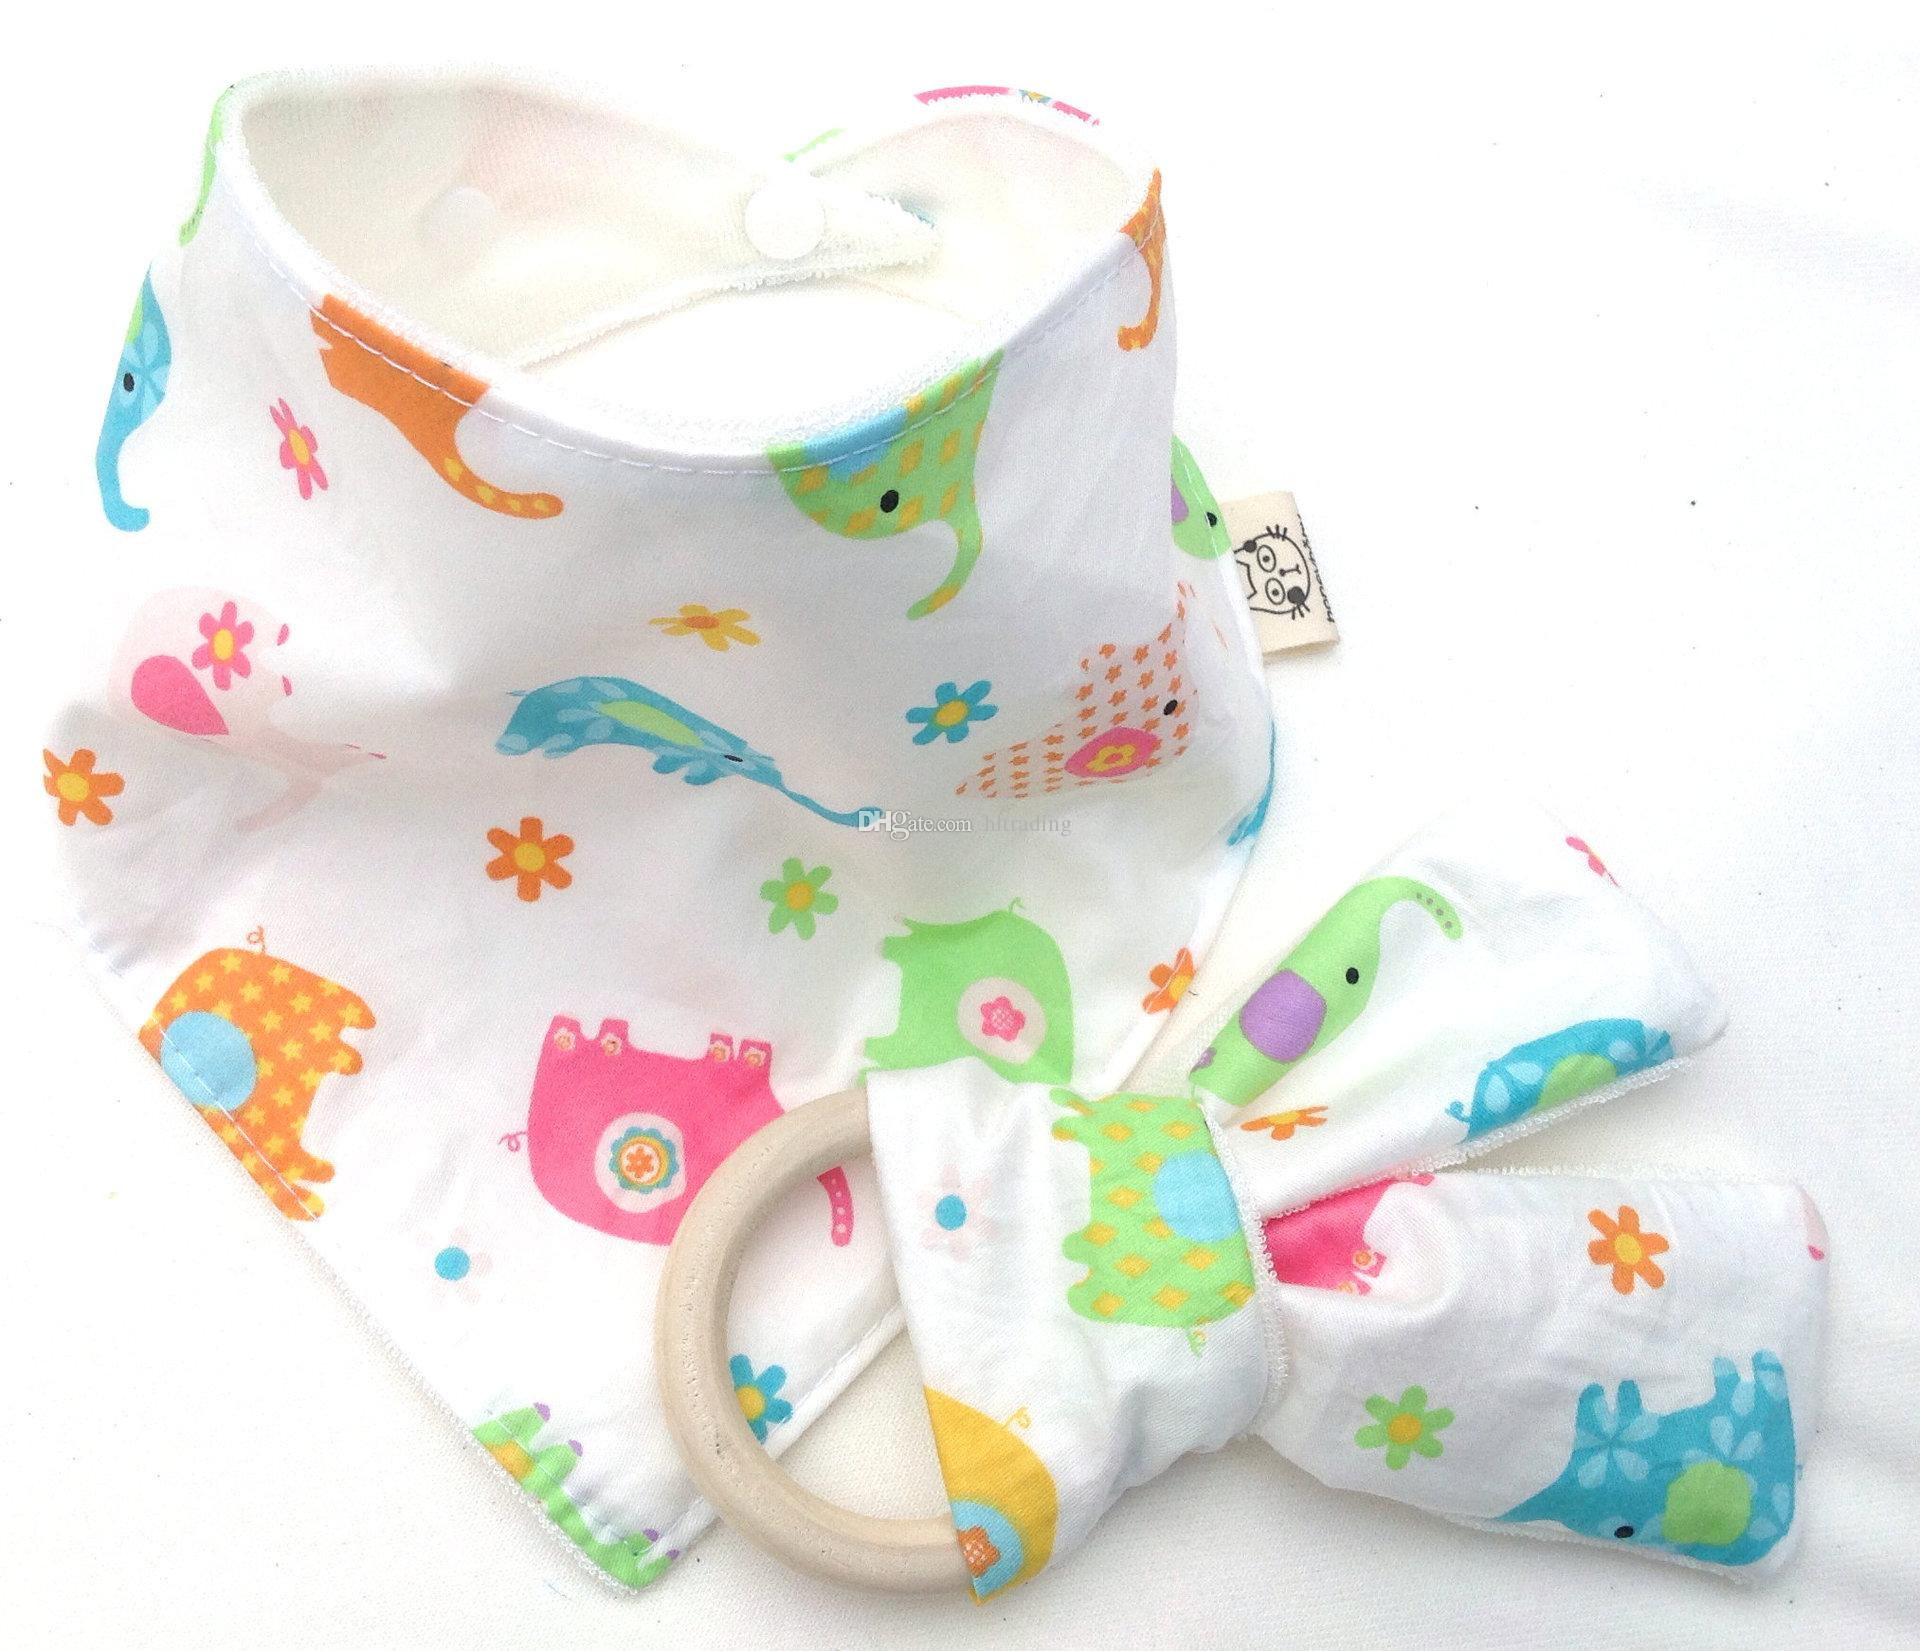 10 Styles Baby Bibs+Teeth Stick Cotton bamboo fiber Infant Wave pattern Burp Cloths Teething Ring Wooden Teething Training C4423